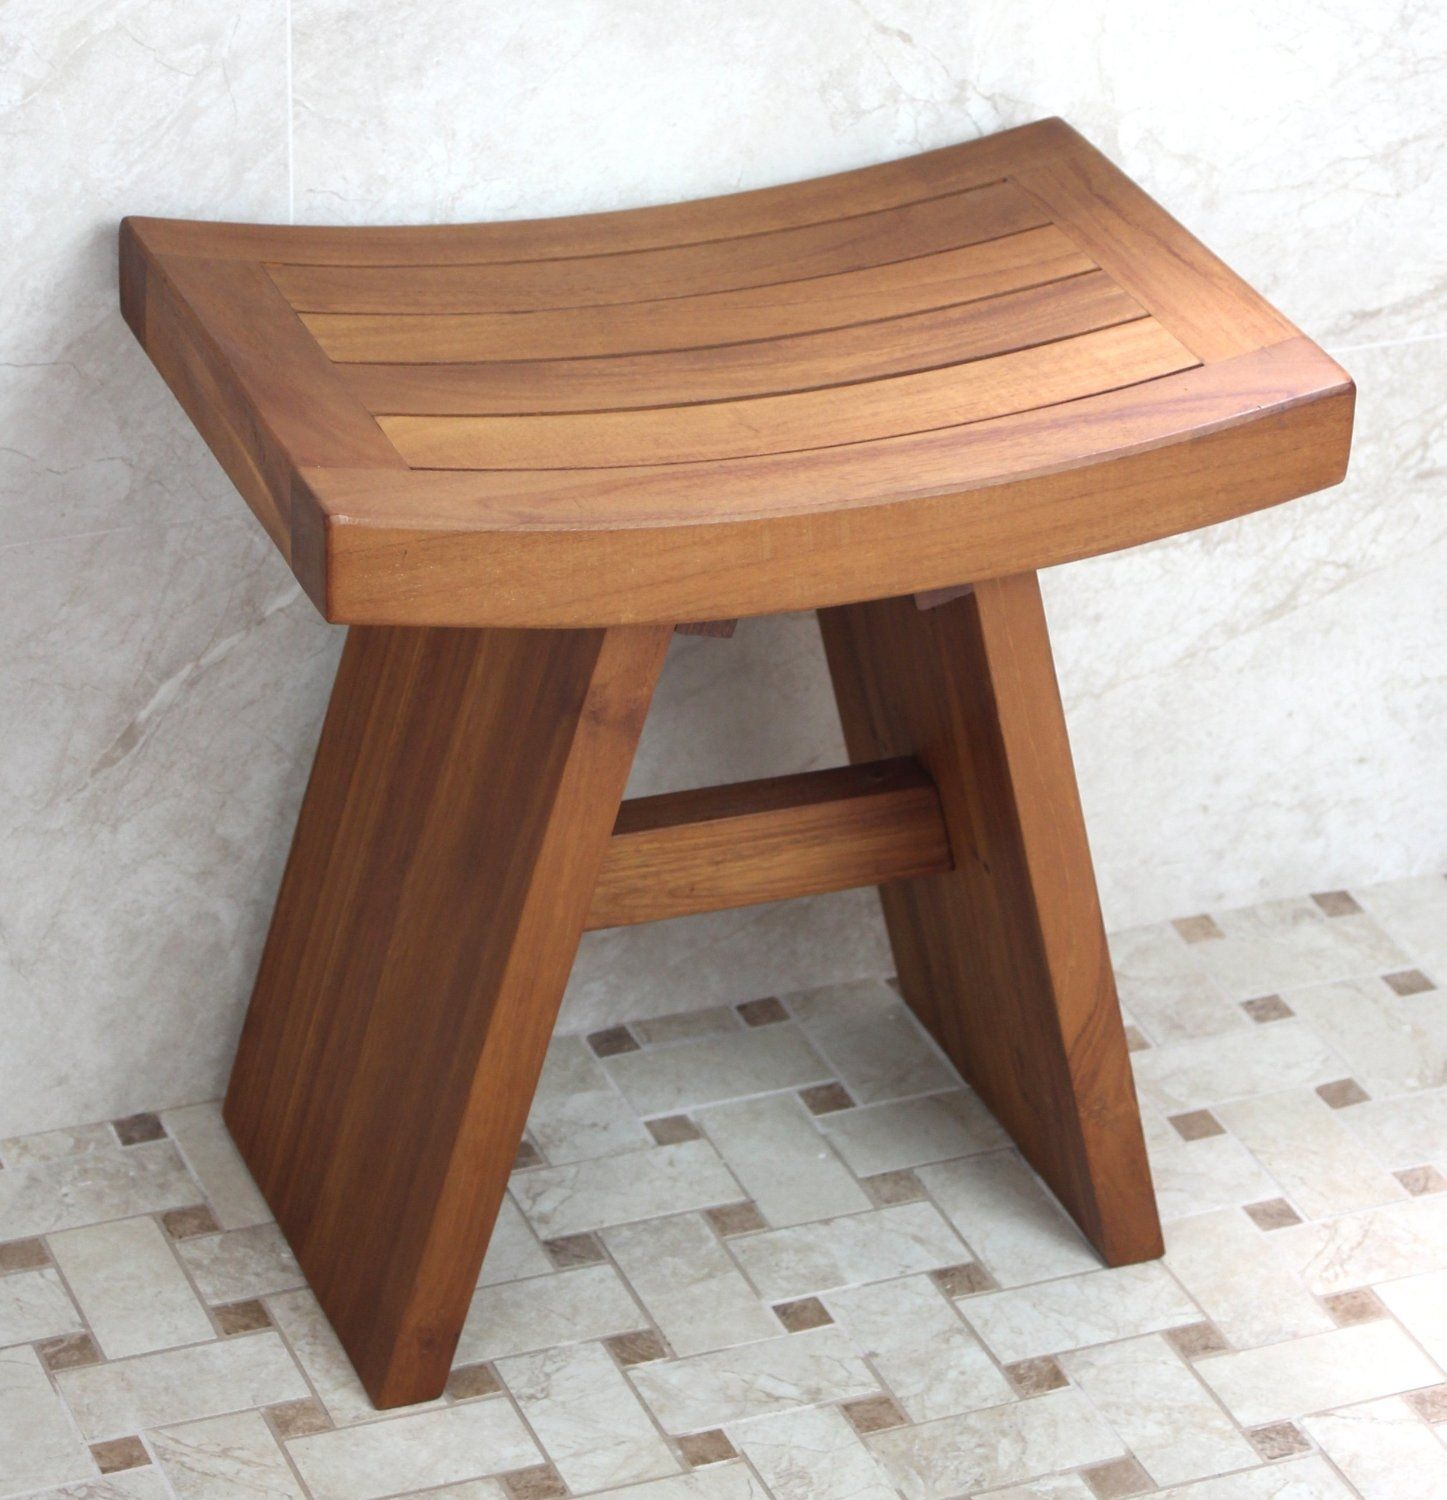 Wood Bathroom Bench The Bathroom Is A Fine To Place Such A Seat